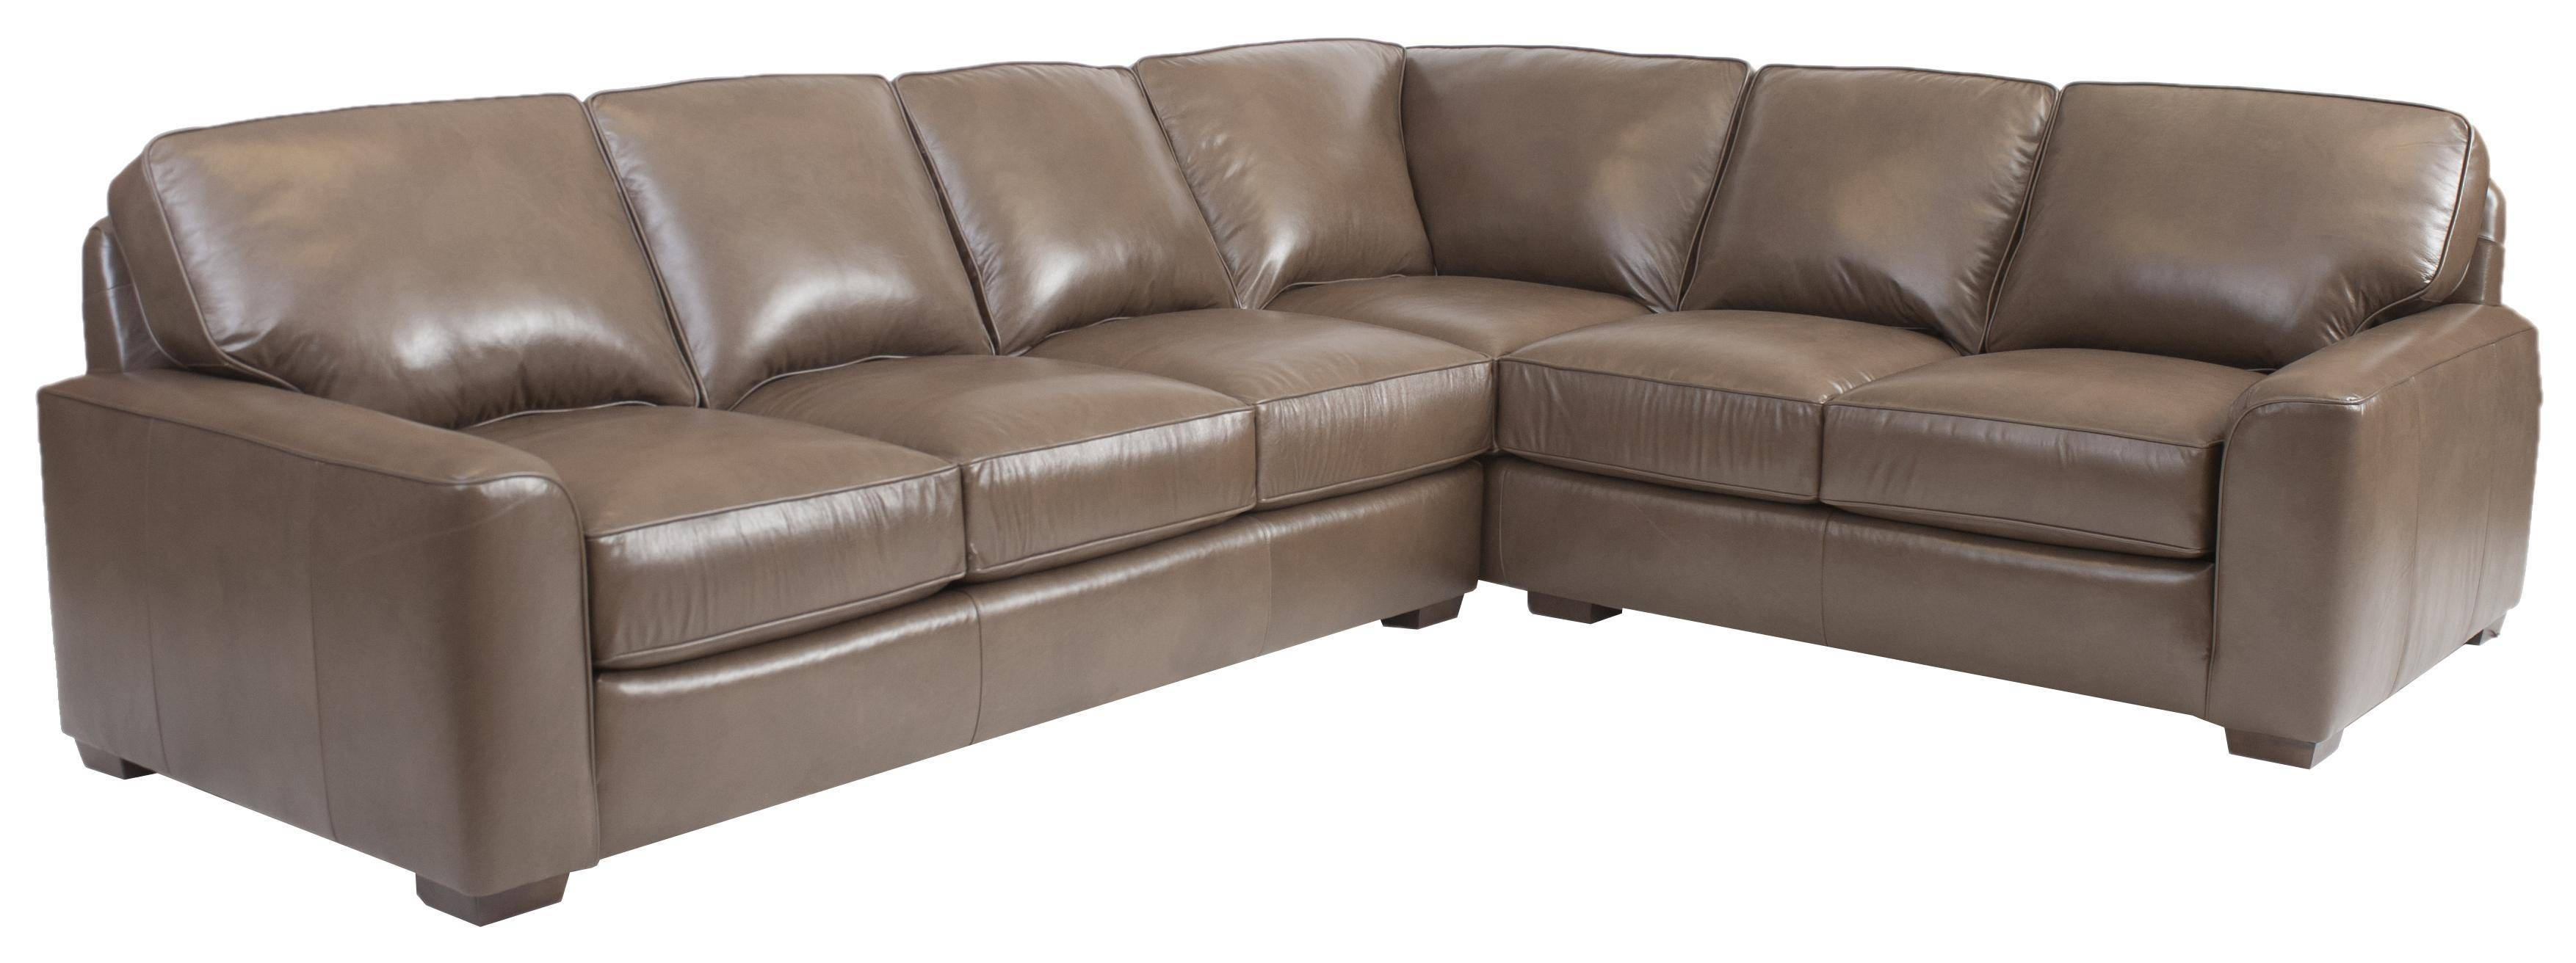 Furniture: Interesting Living Room Interior Using Large Sectional Intended For Sectional Sofa With Large Ottoman (View 8 of 30)